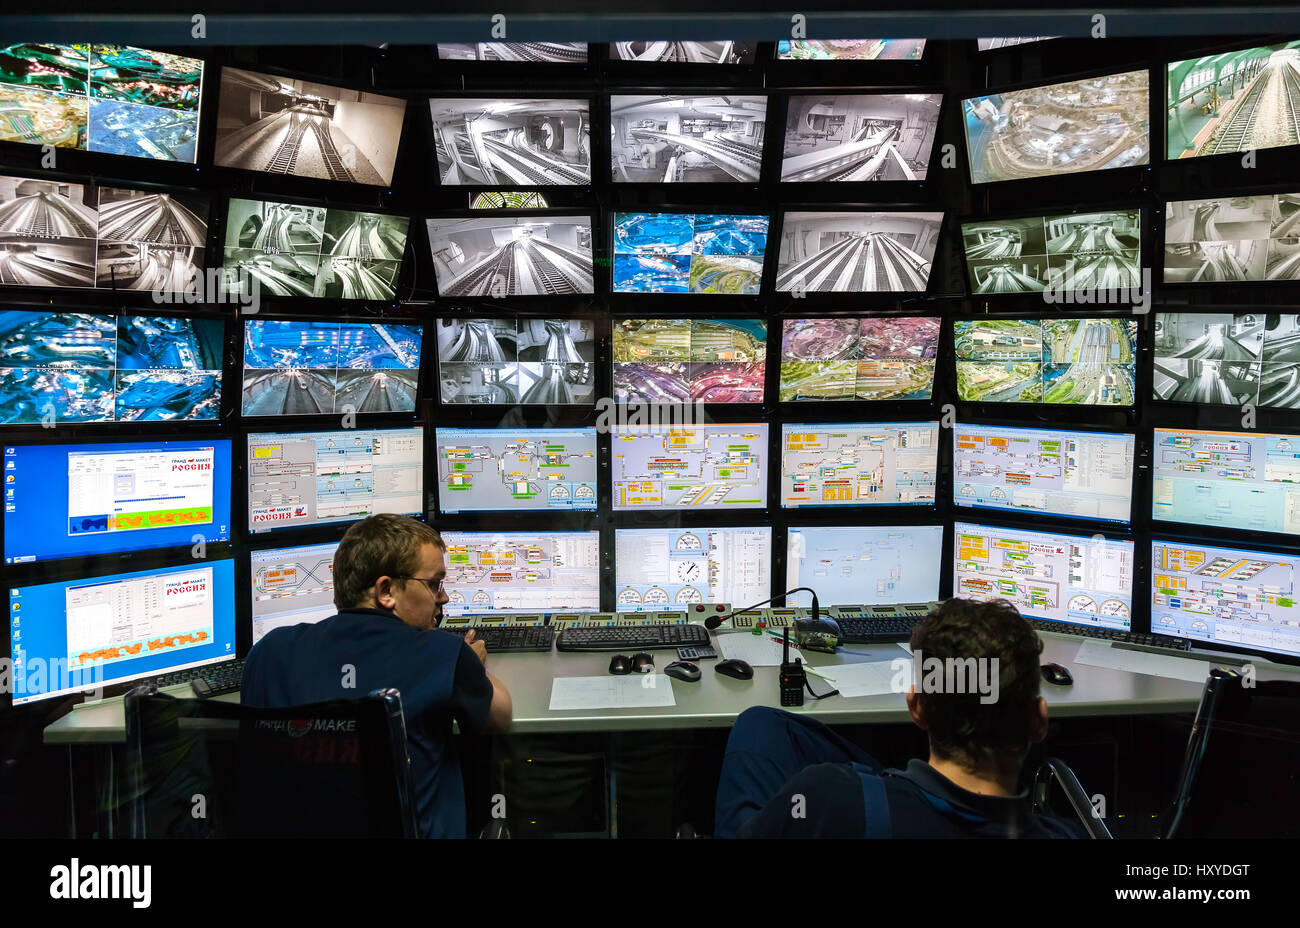 SAINT- PETERSBURG, RUSSIA - AUGUST 8, 2014: Control room of the attraction Grand Russian layout. Is the largest - Stock Image